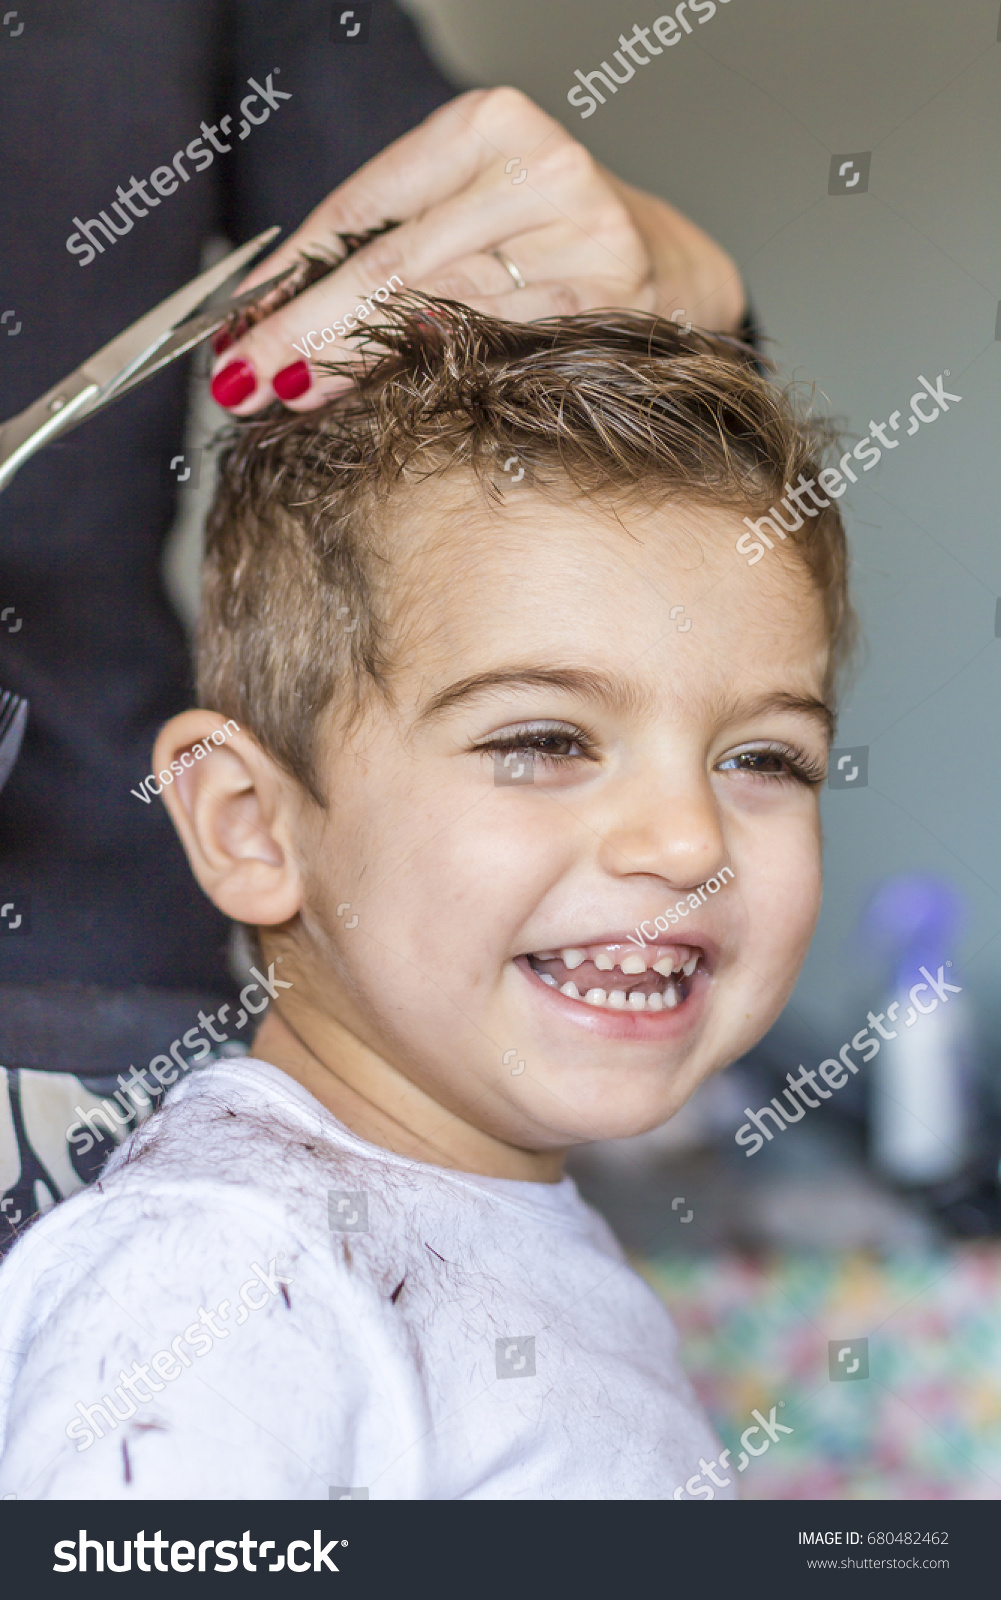 Cute Young Boy Getting Haircut Home Stock Photo Edit Now 680482462